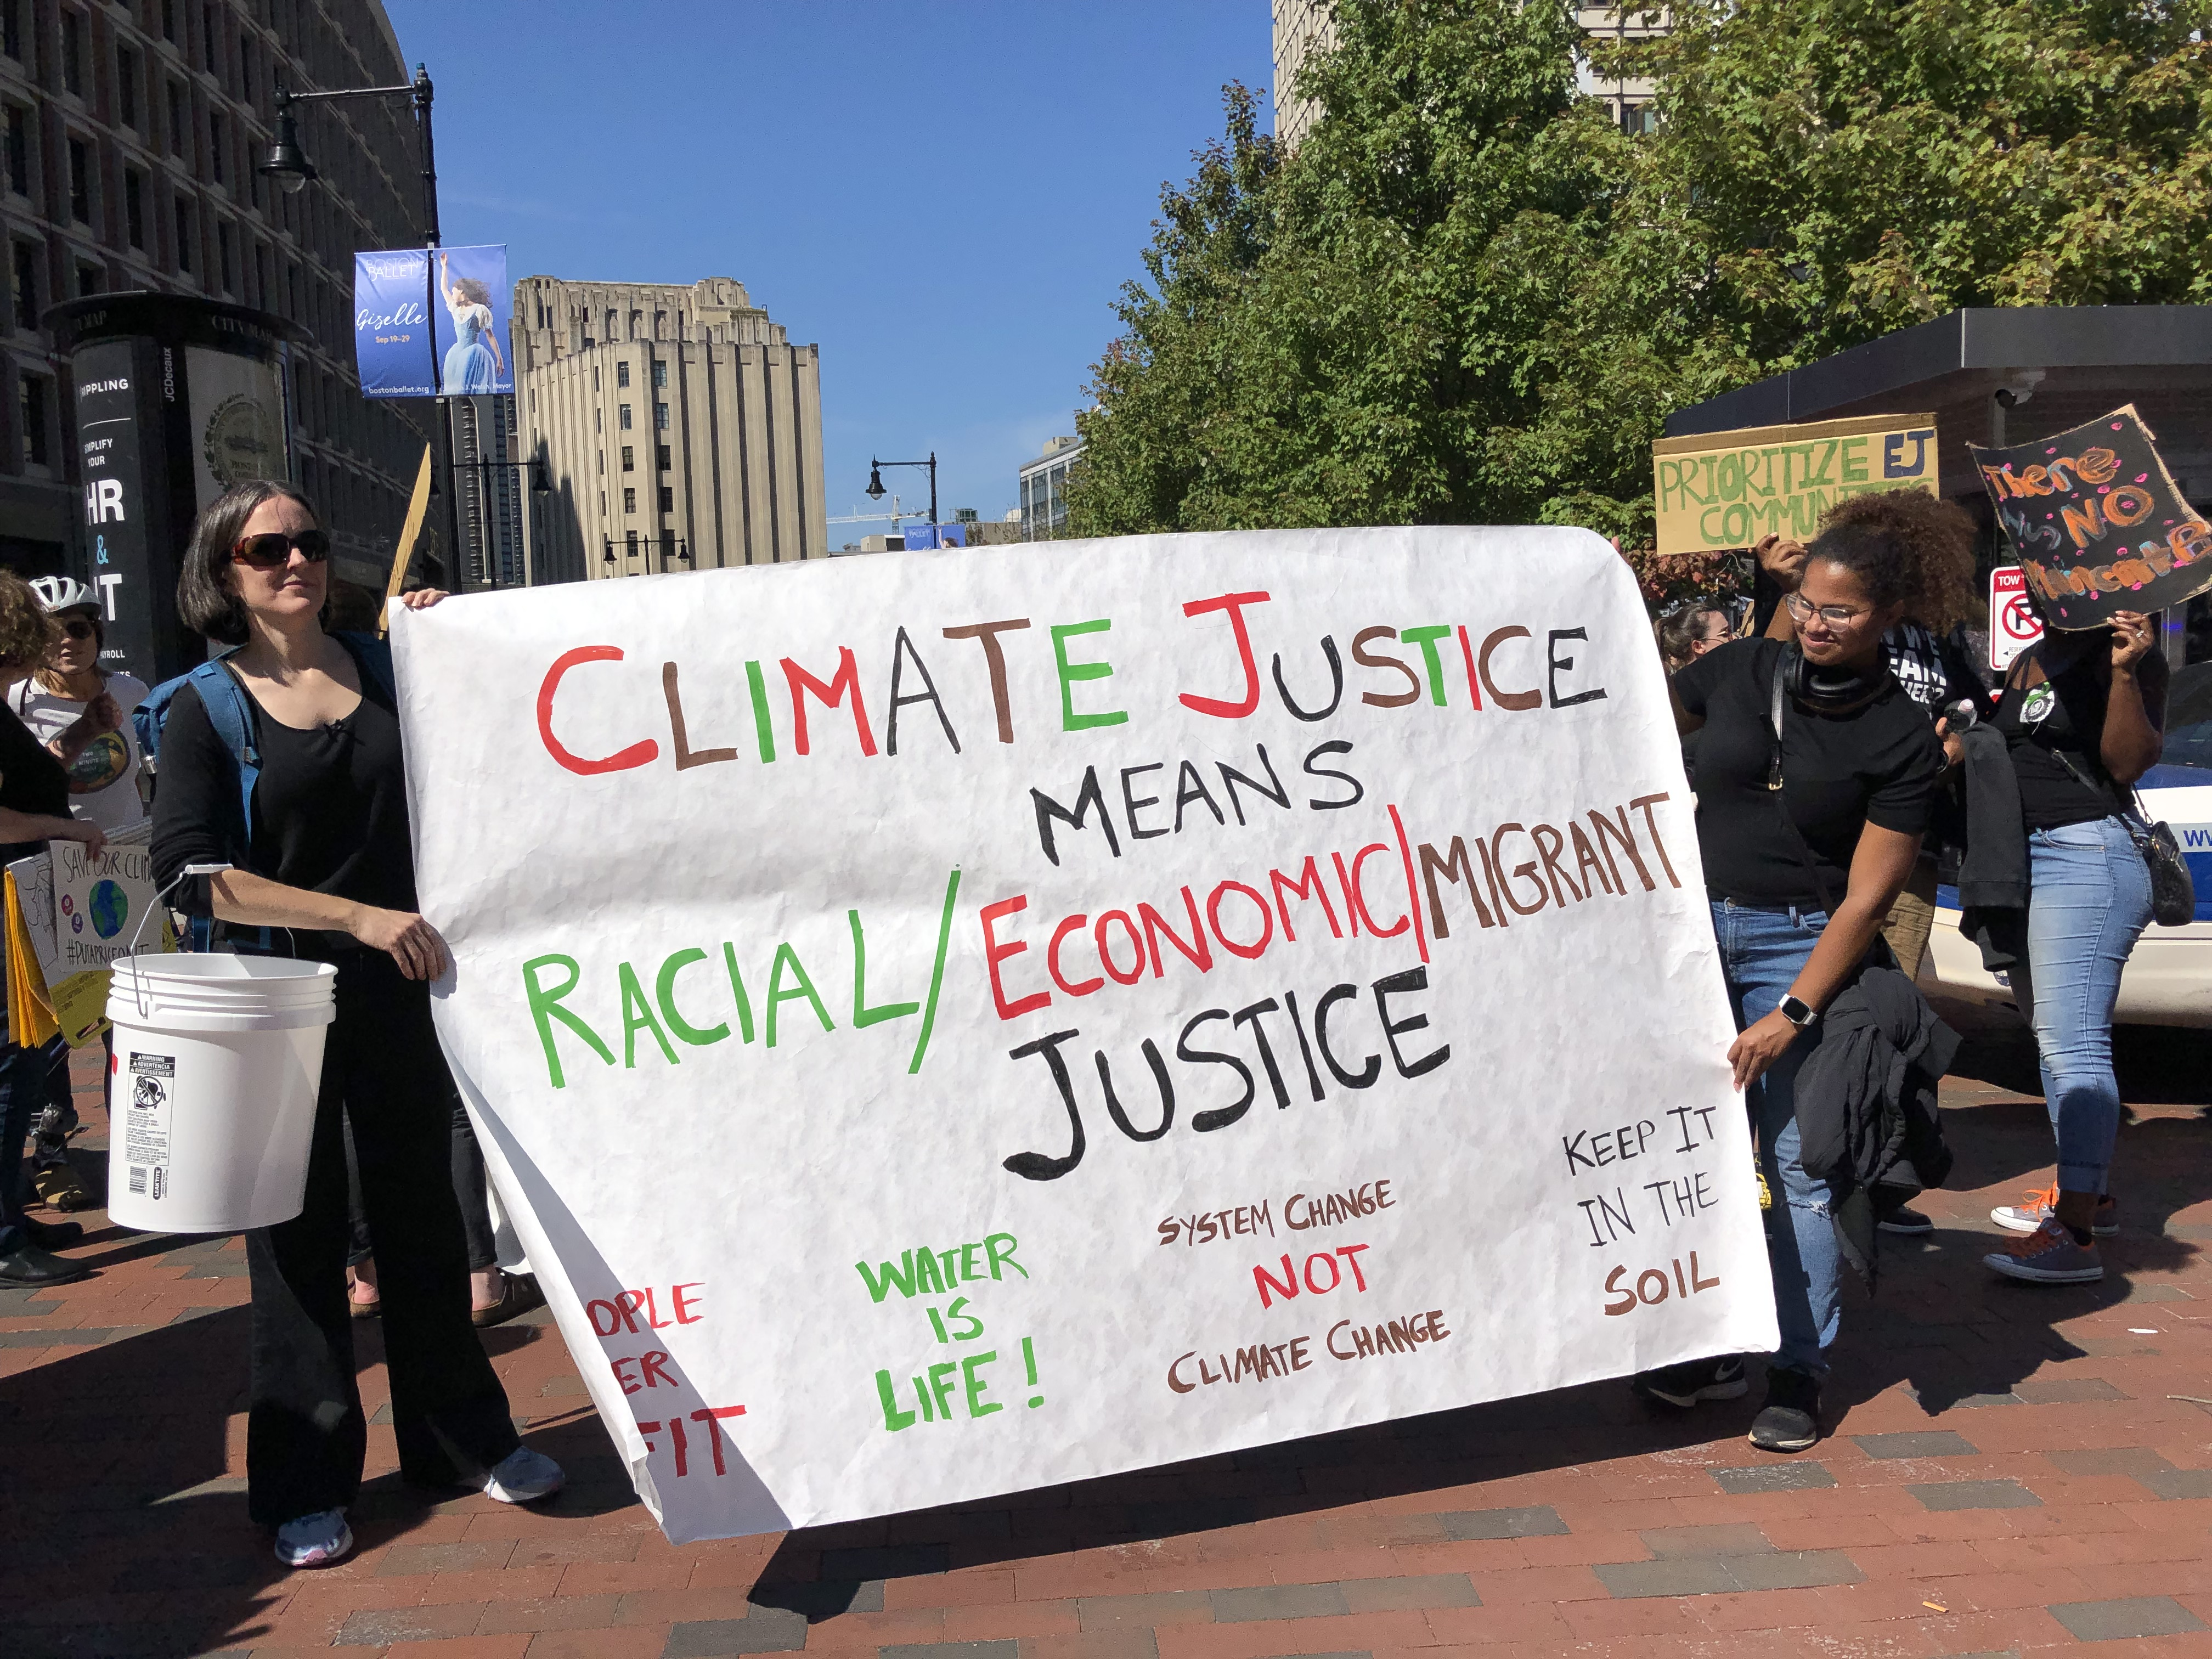 MA_CWF_ Taelise with banner 1.jpg